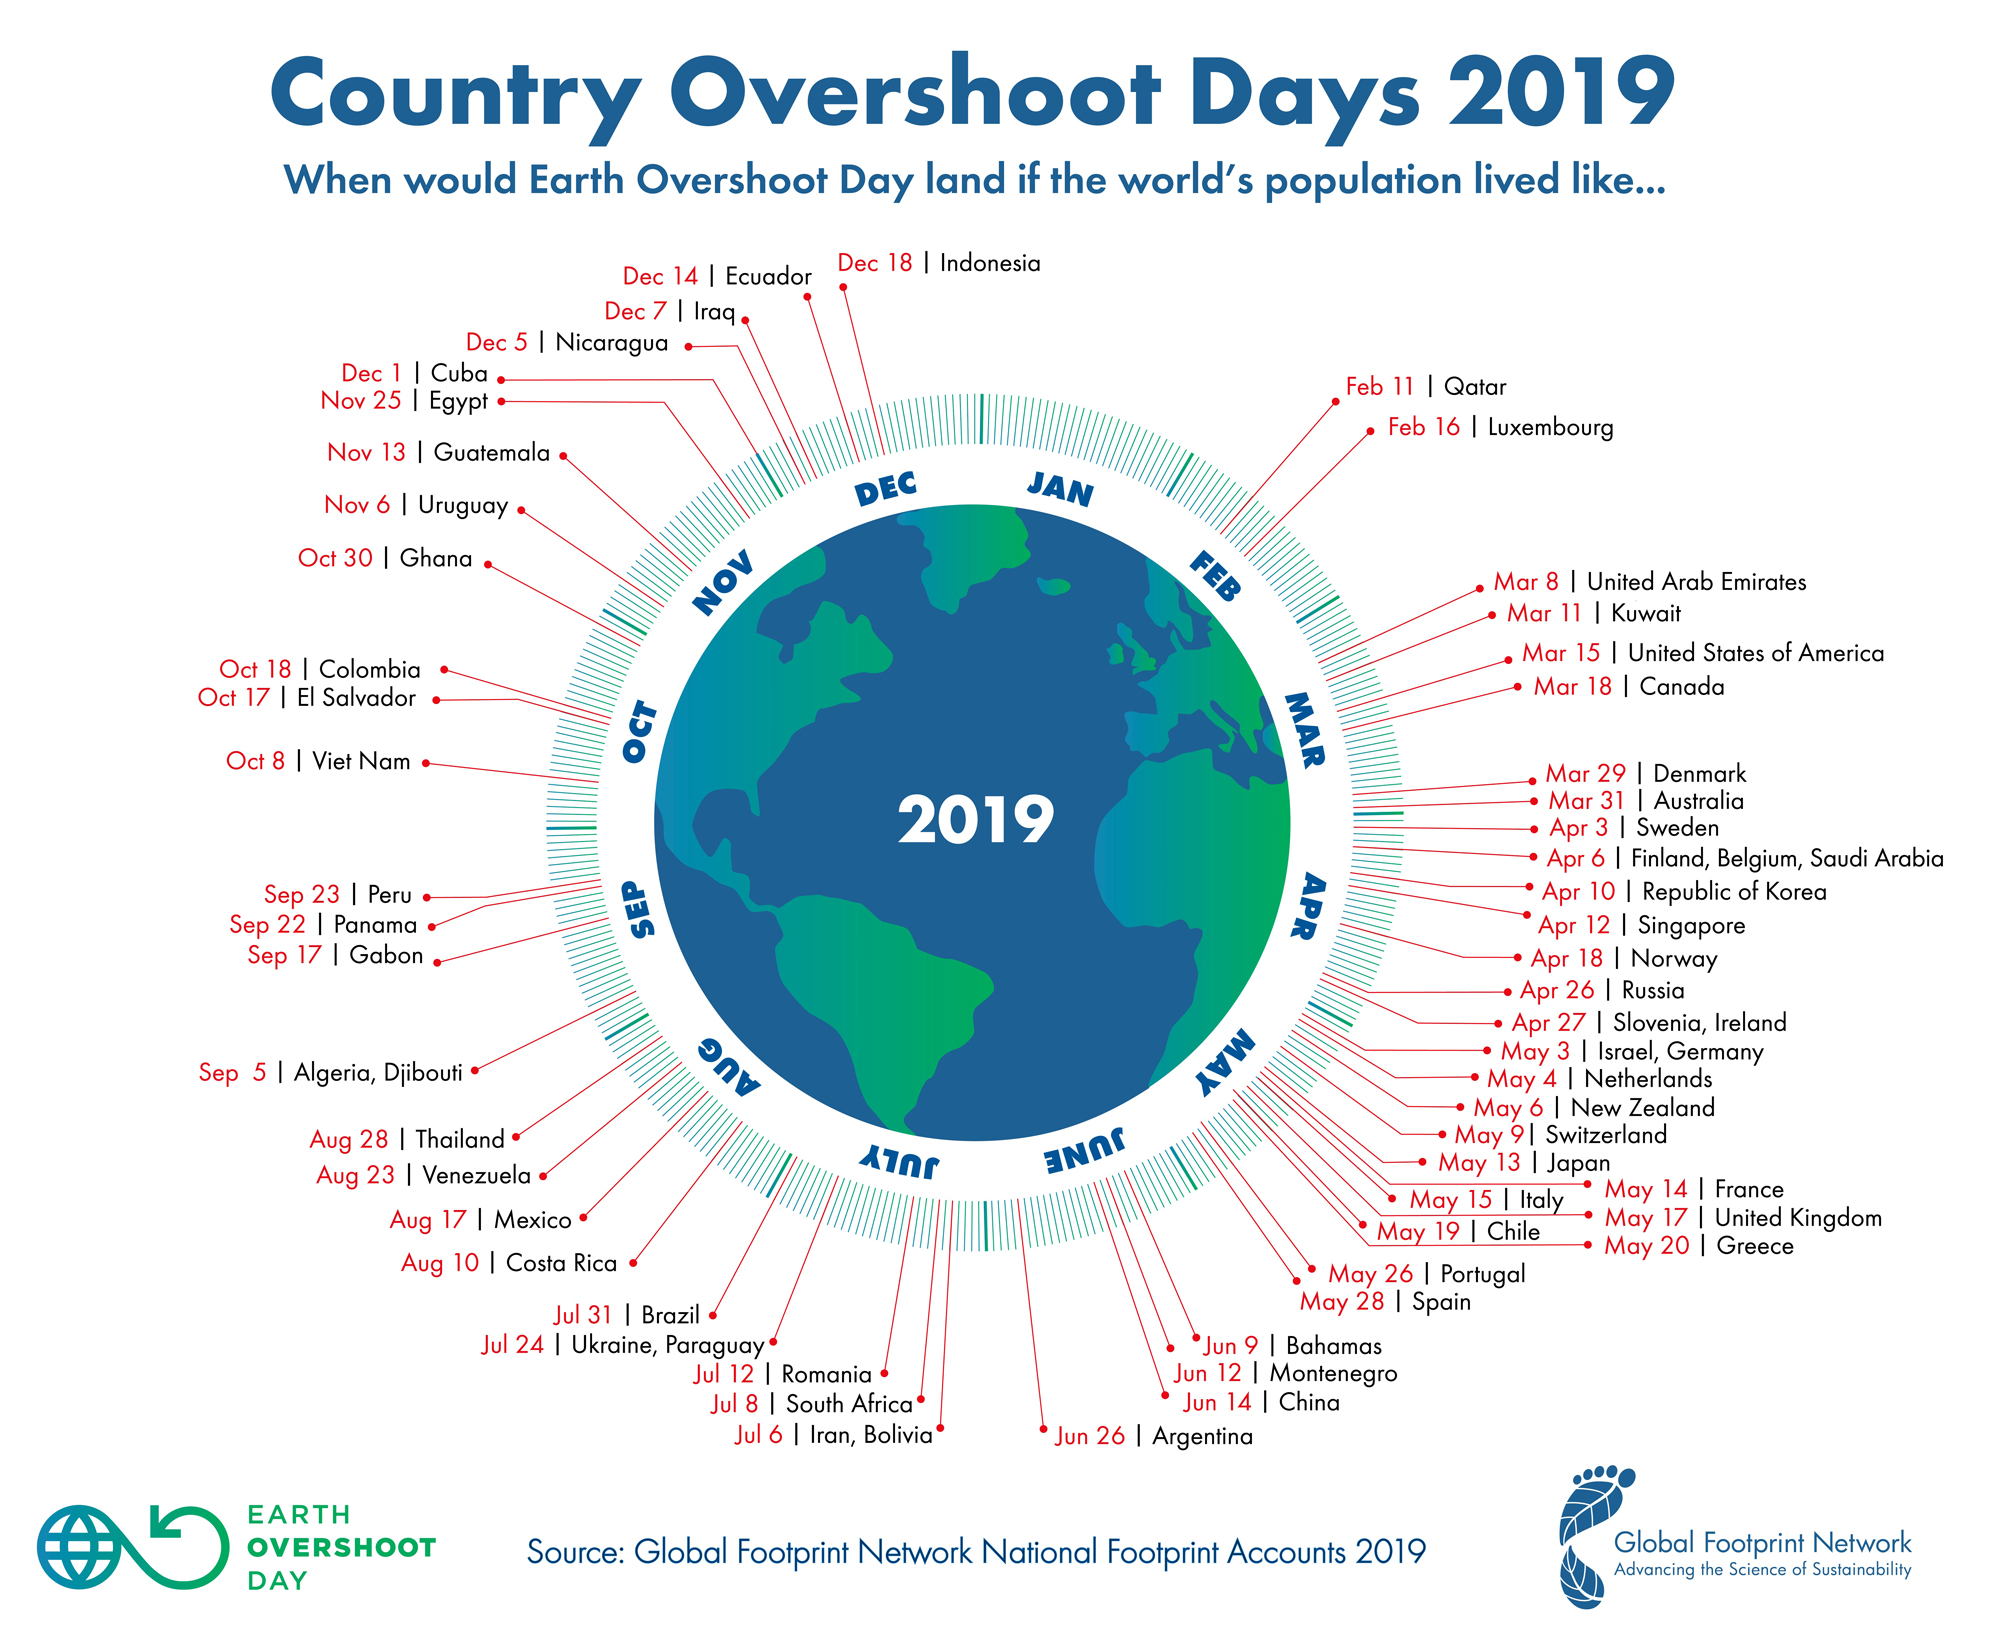 An illustration showing different countries Earth Overshoot Days.